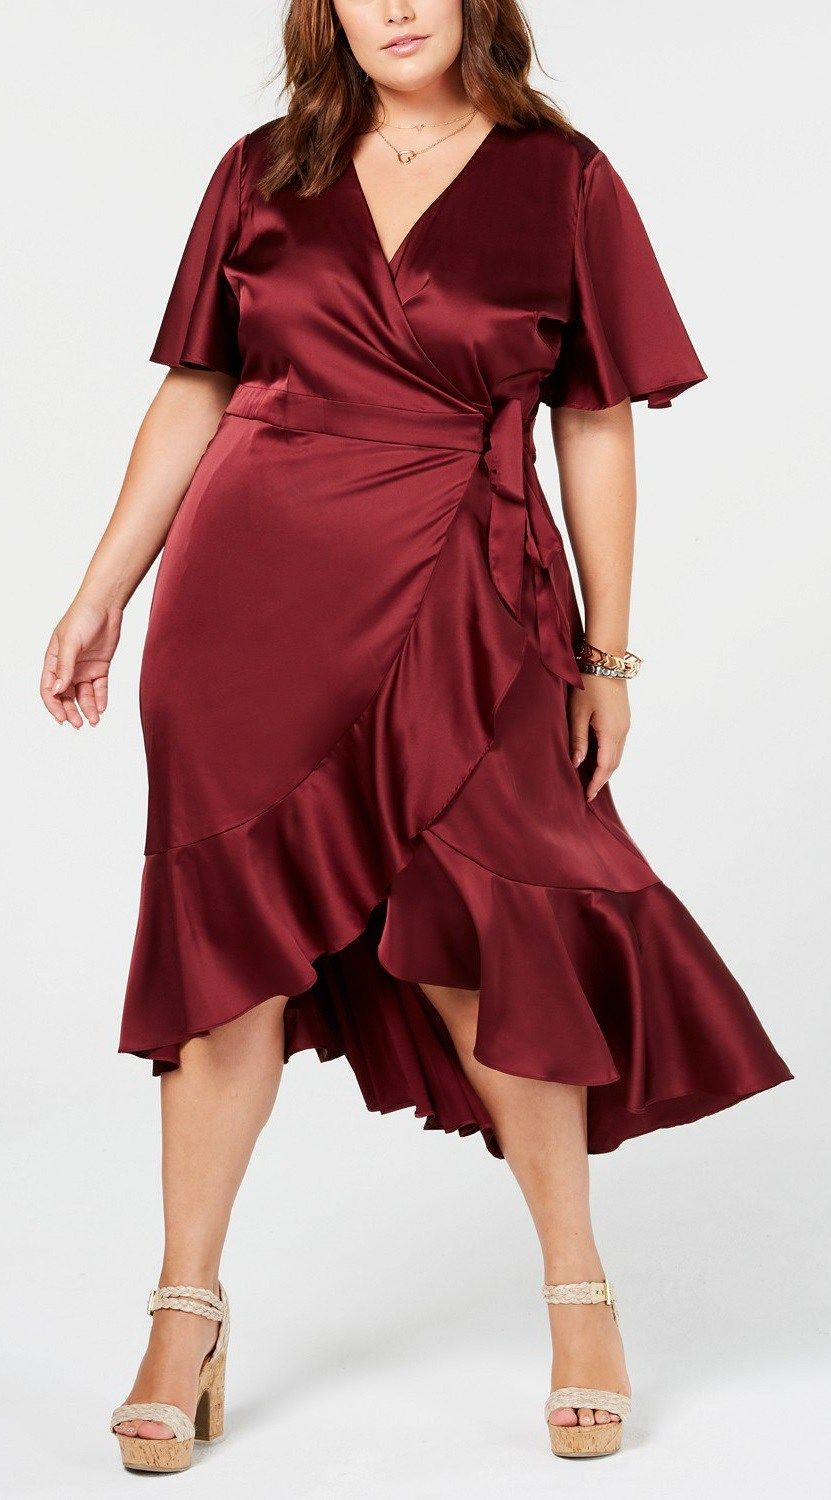 45 Plus Size Wedding Guest Dresses With Sleeves Alexa Webb Fall Wedding Guest Dress Plus Size Wedding Guest Dresses Plus Size Wedding Dresses With Sleeves,Elegant Maxi Dresses For Weddings